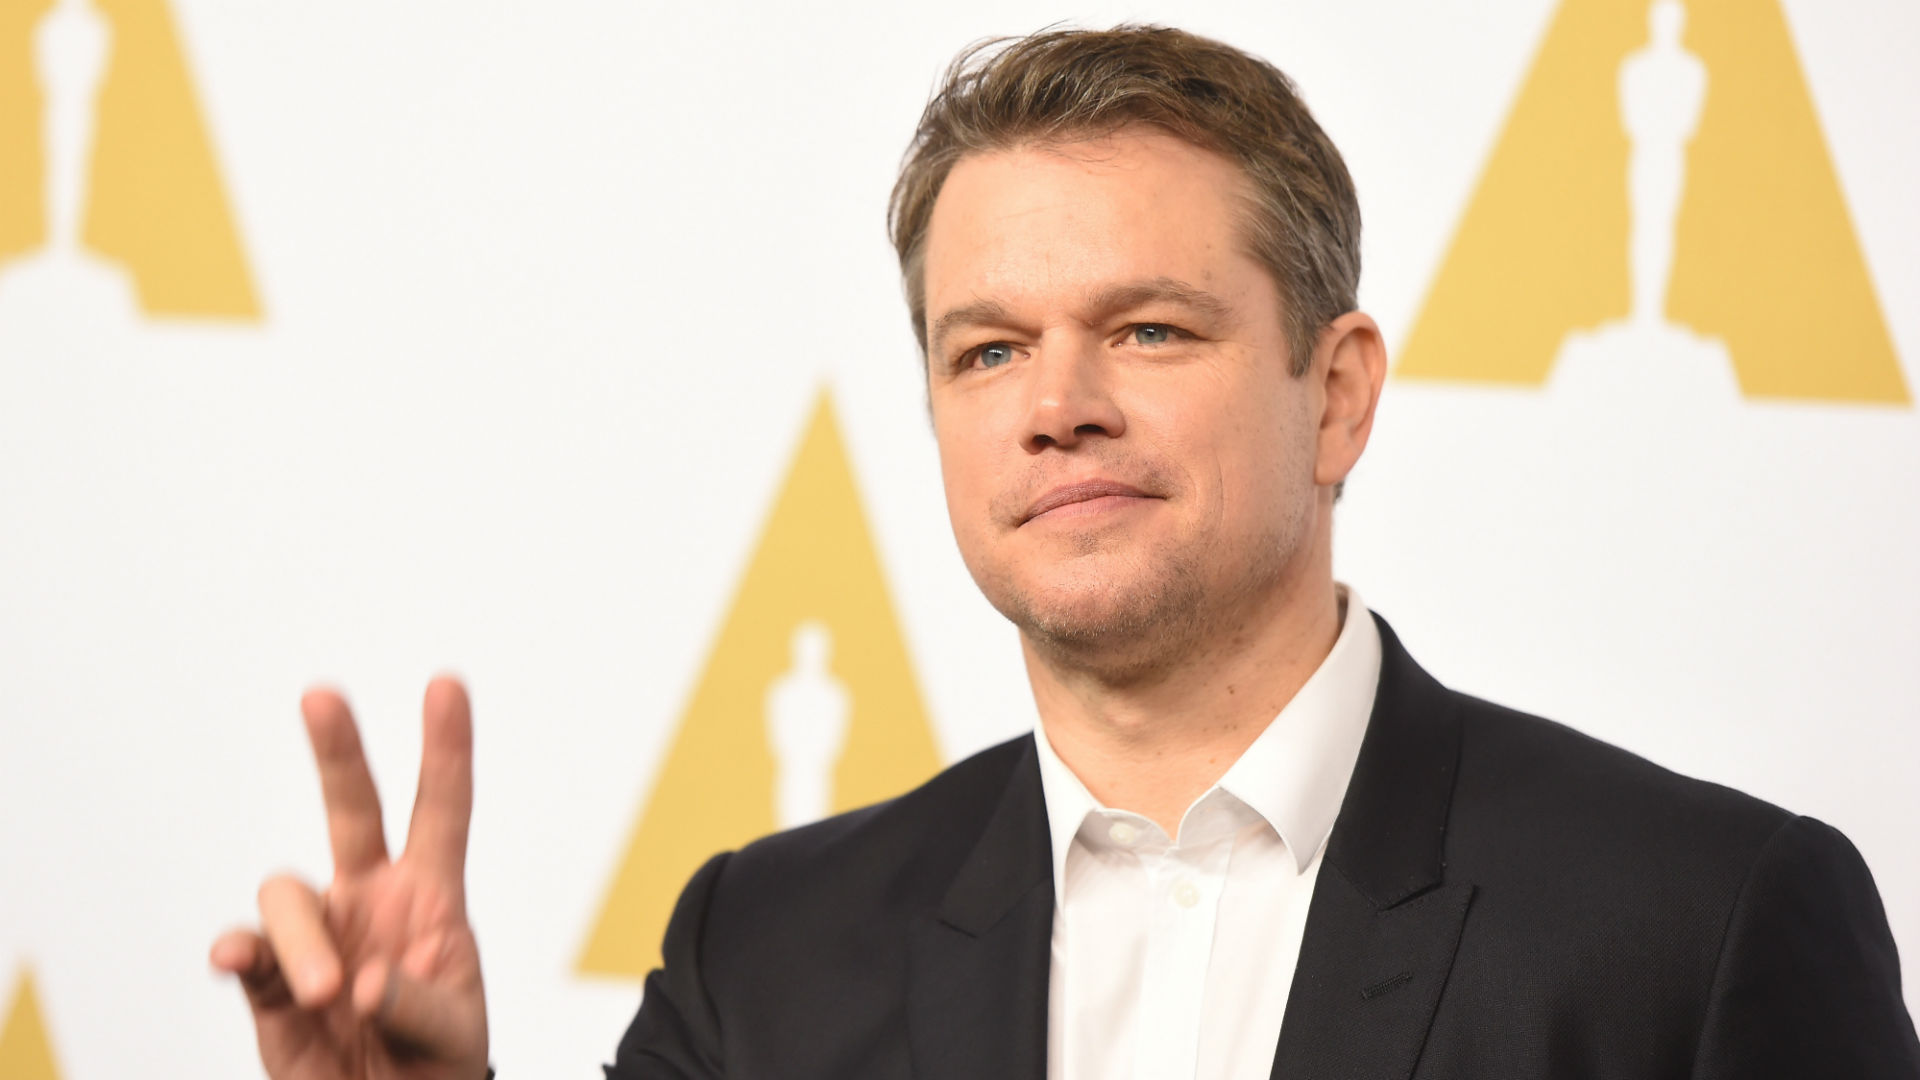 Matt Damon Dresses as Tom Brady for 'Jimmy Kimmel Live!' Sneak Visit